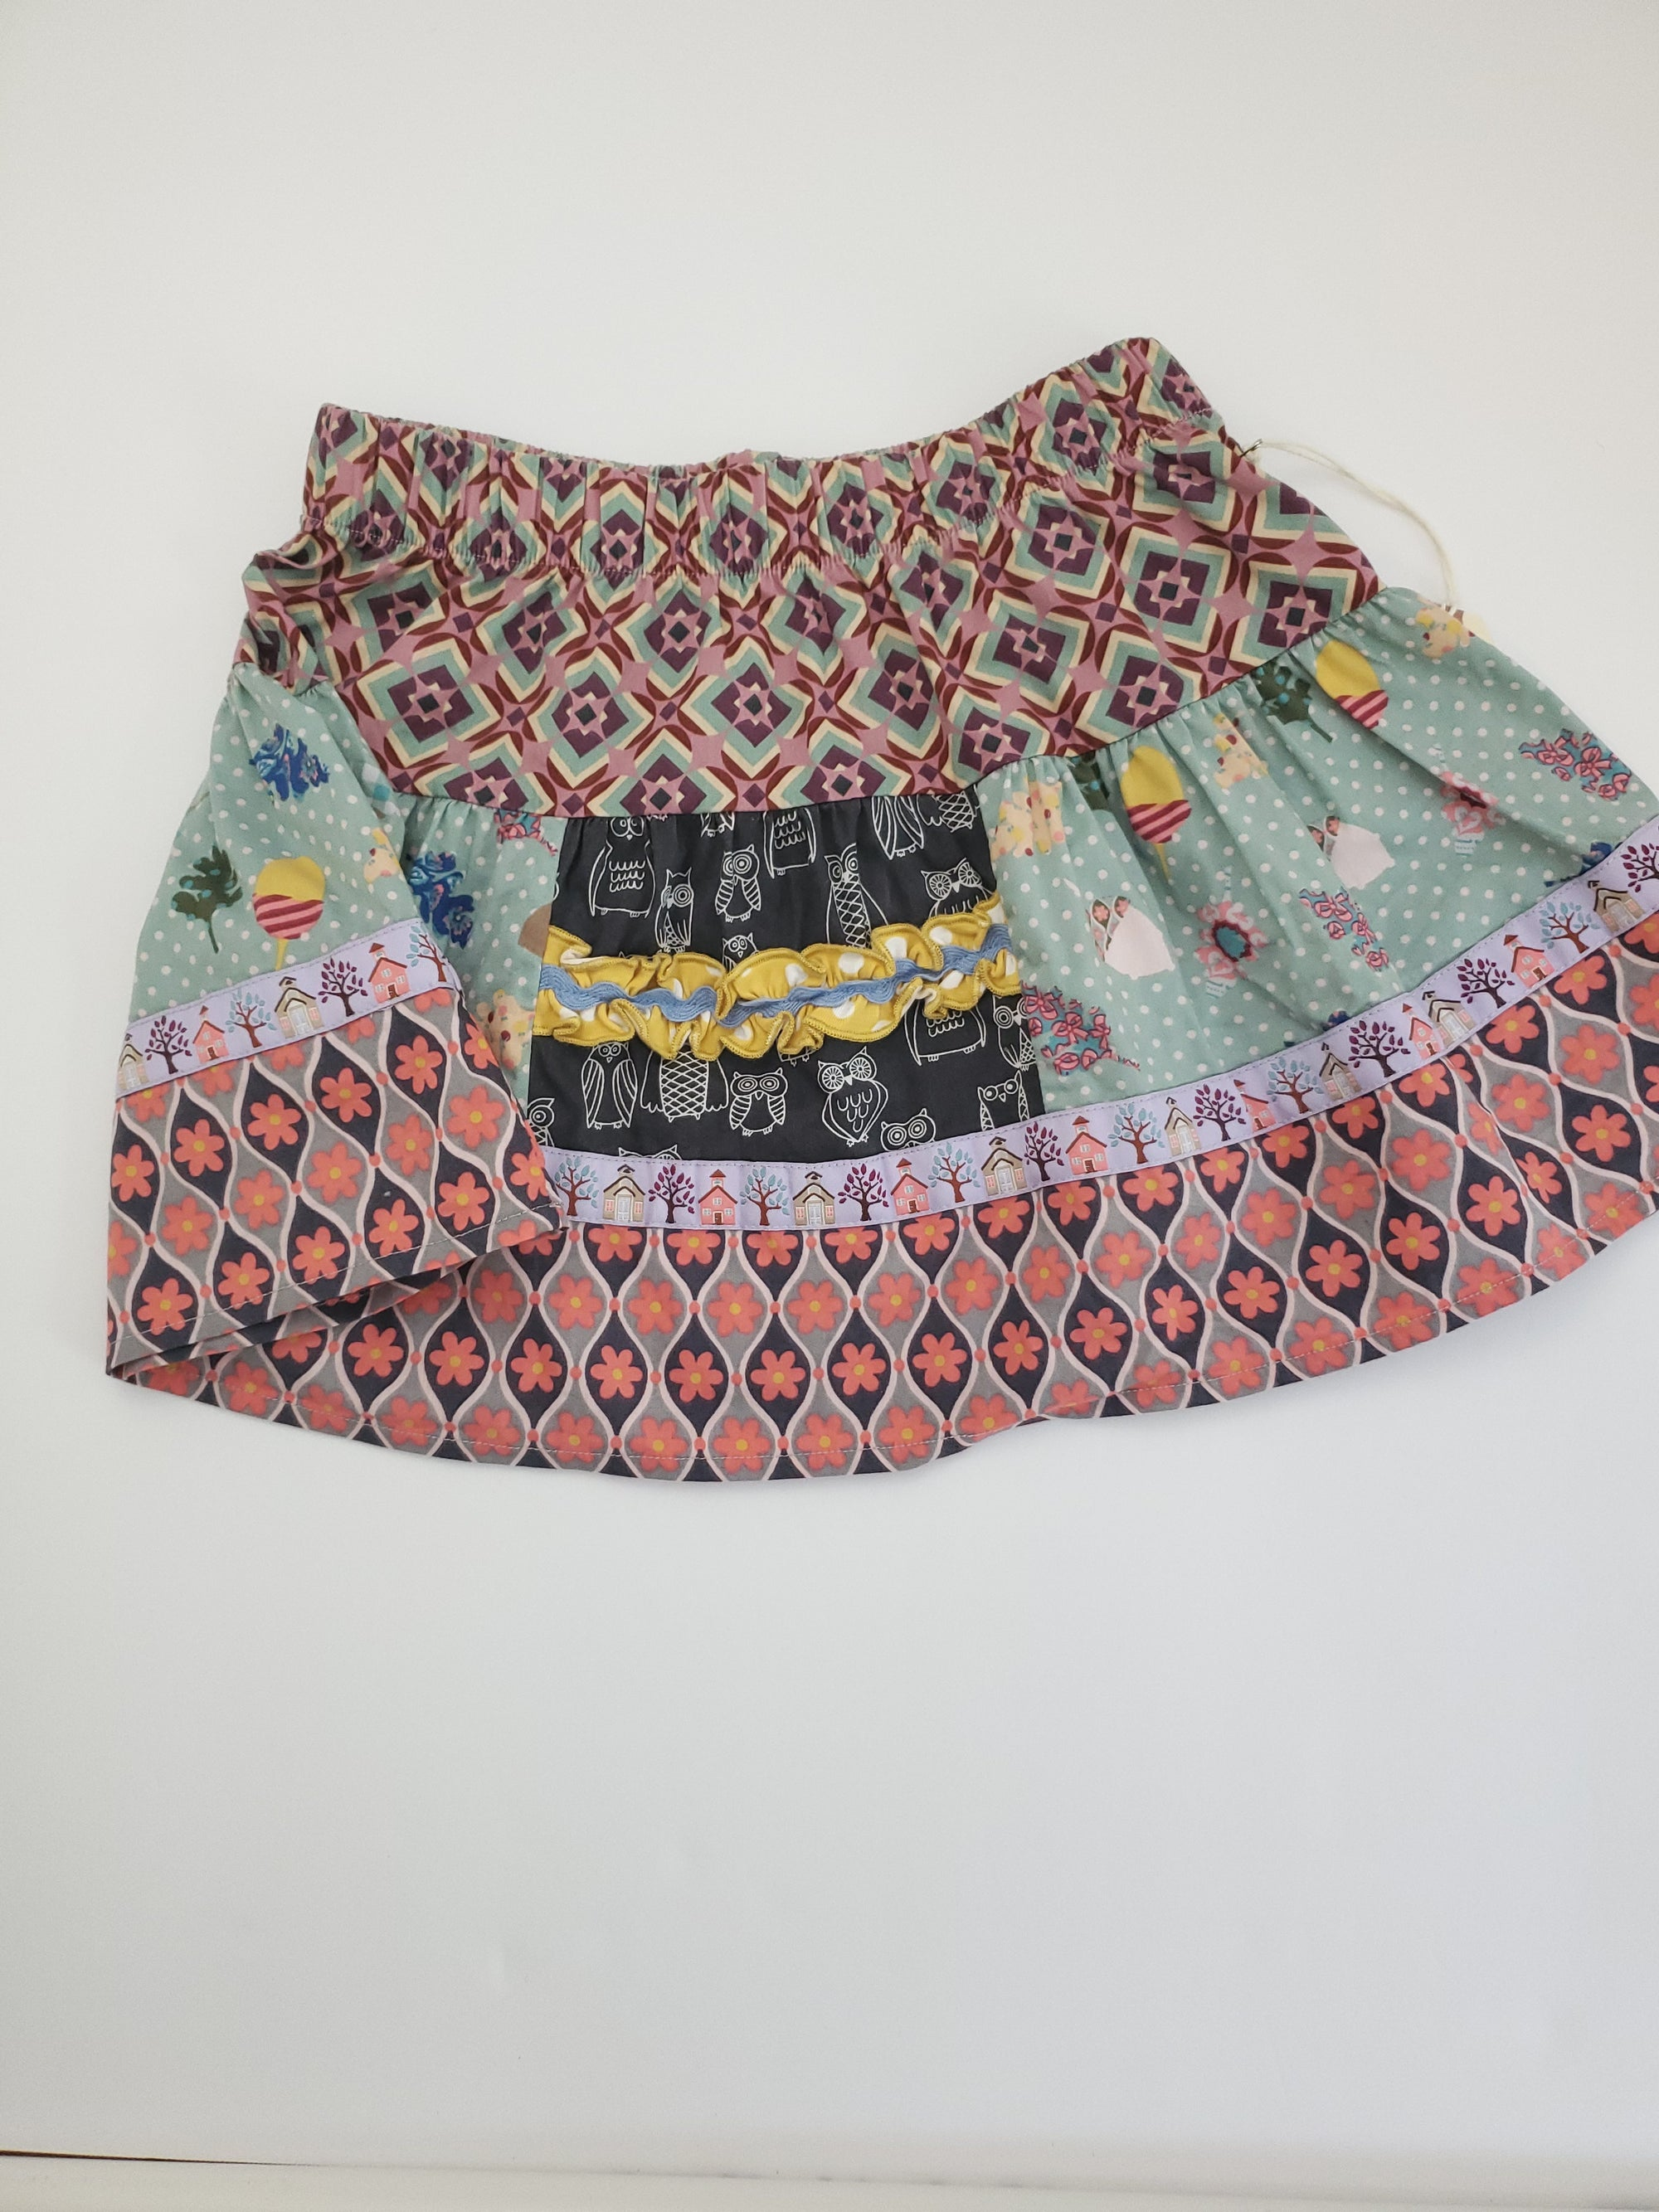 Resale 4T Matilda Jane Skirt - Owl / Fall Multi Print